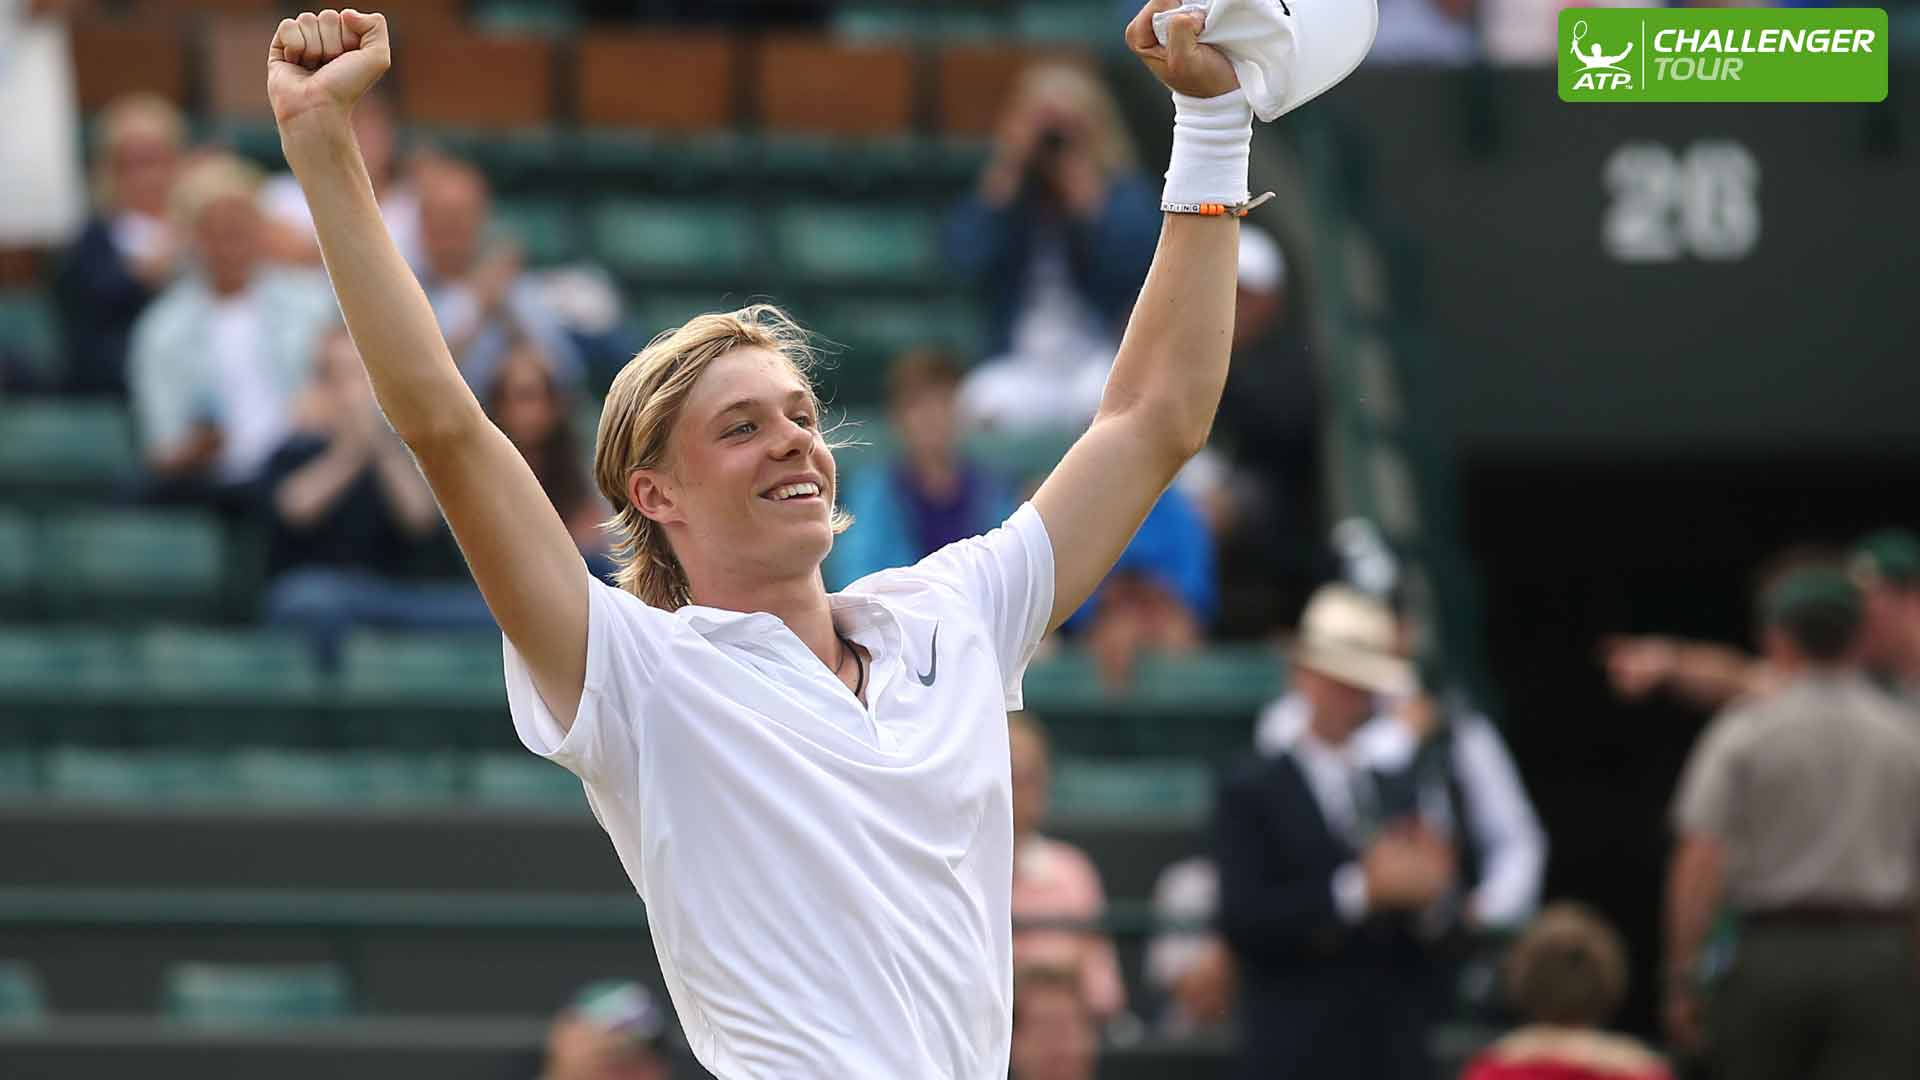 Denis Shapovalov is making a successful transition from the juniors to the pros.